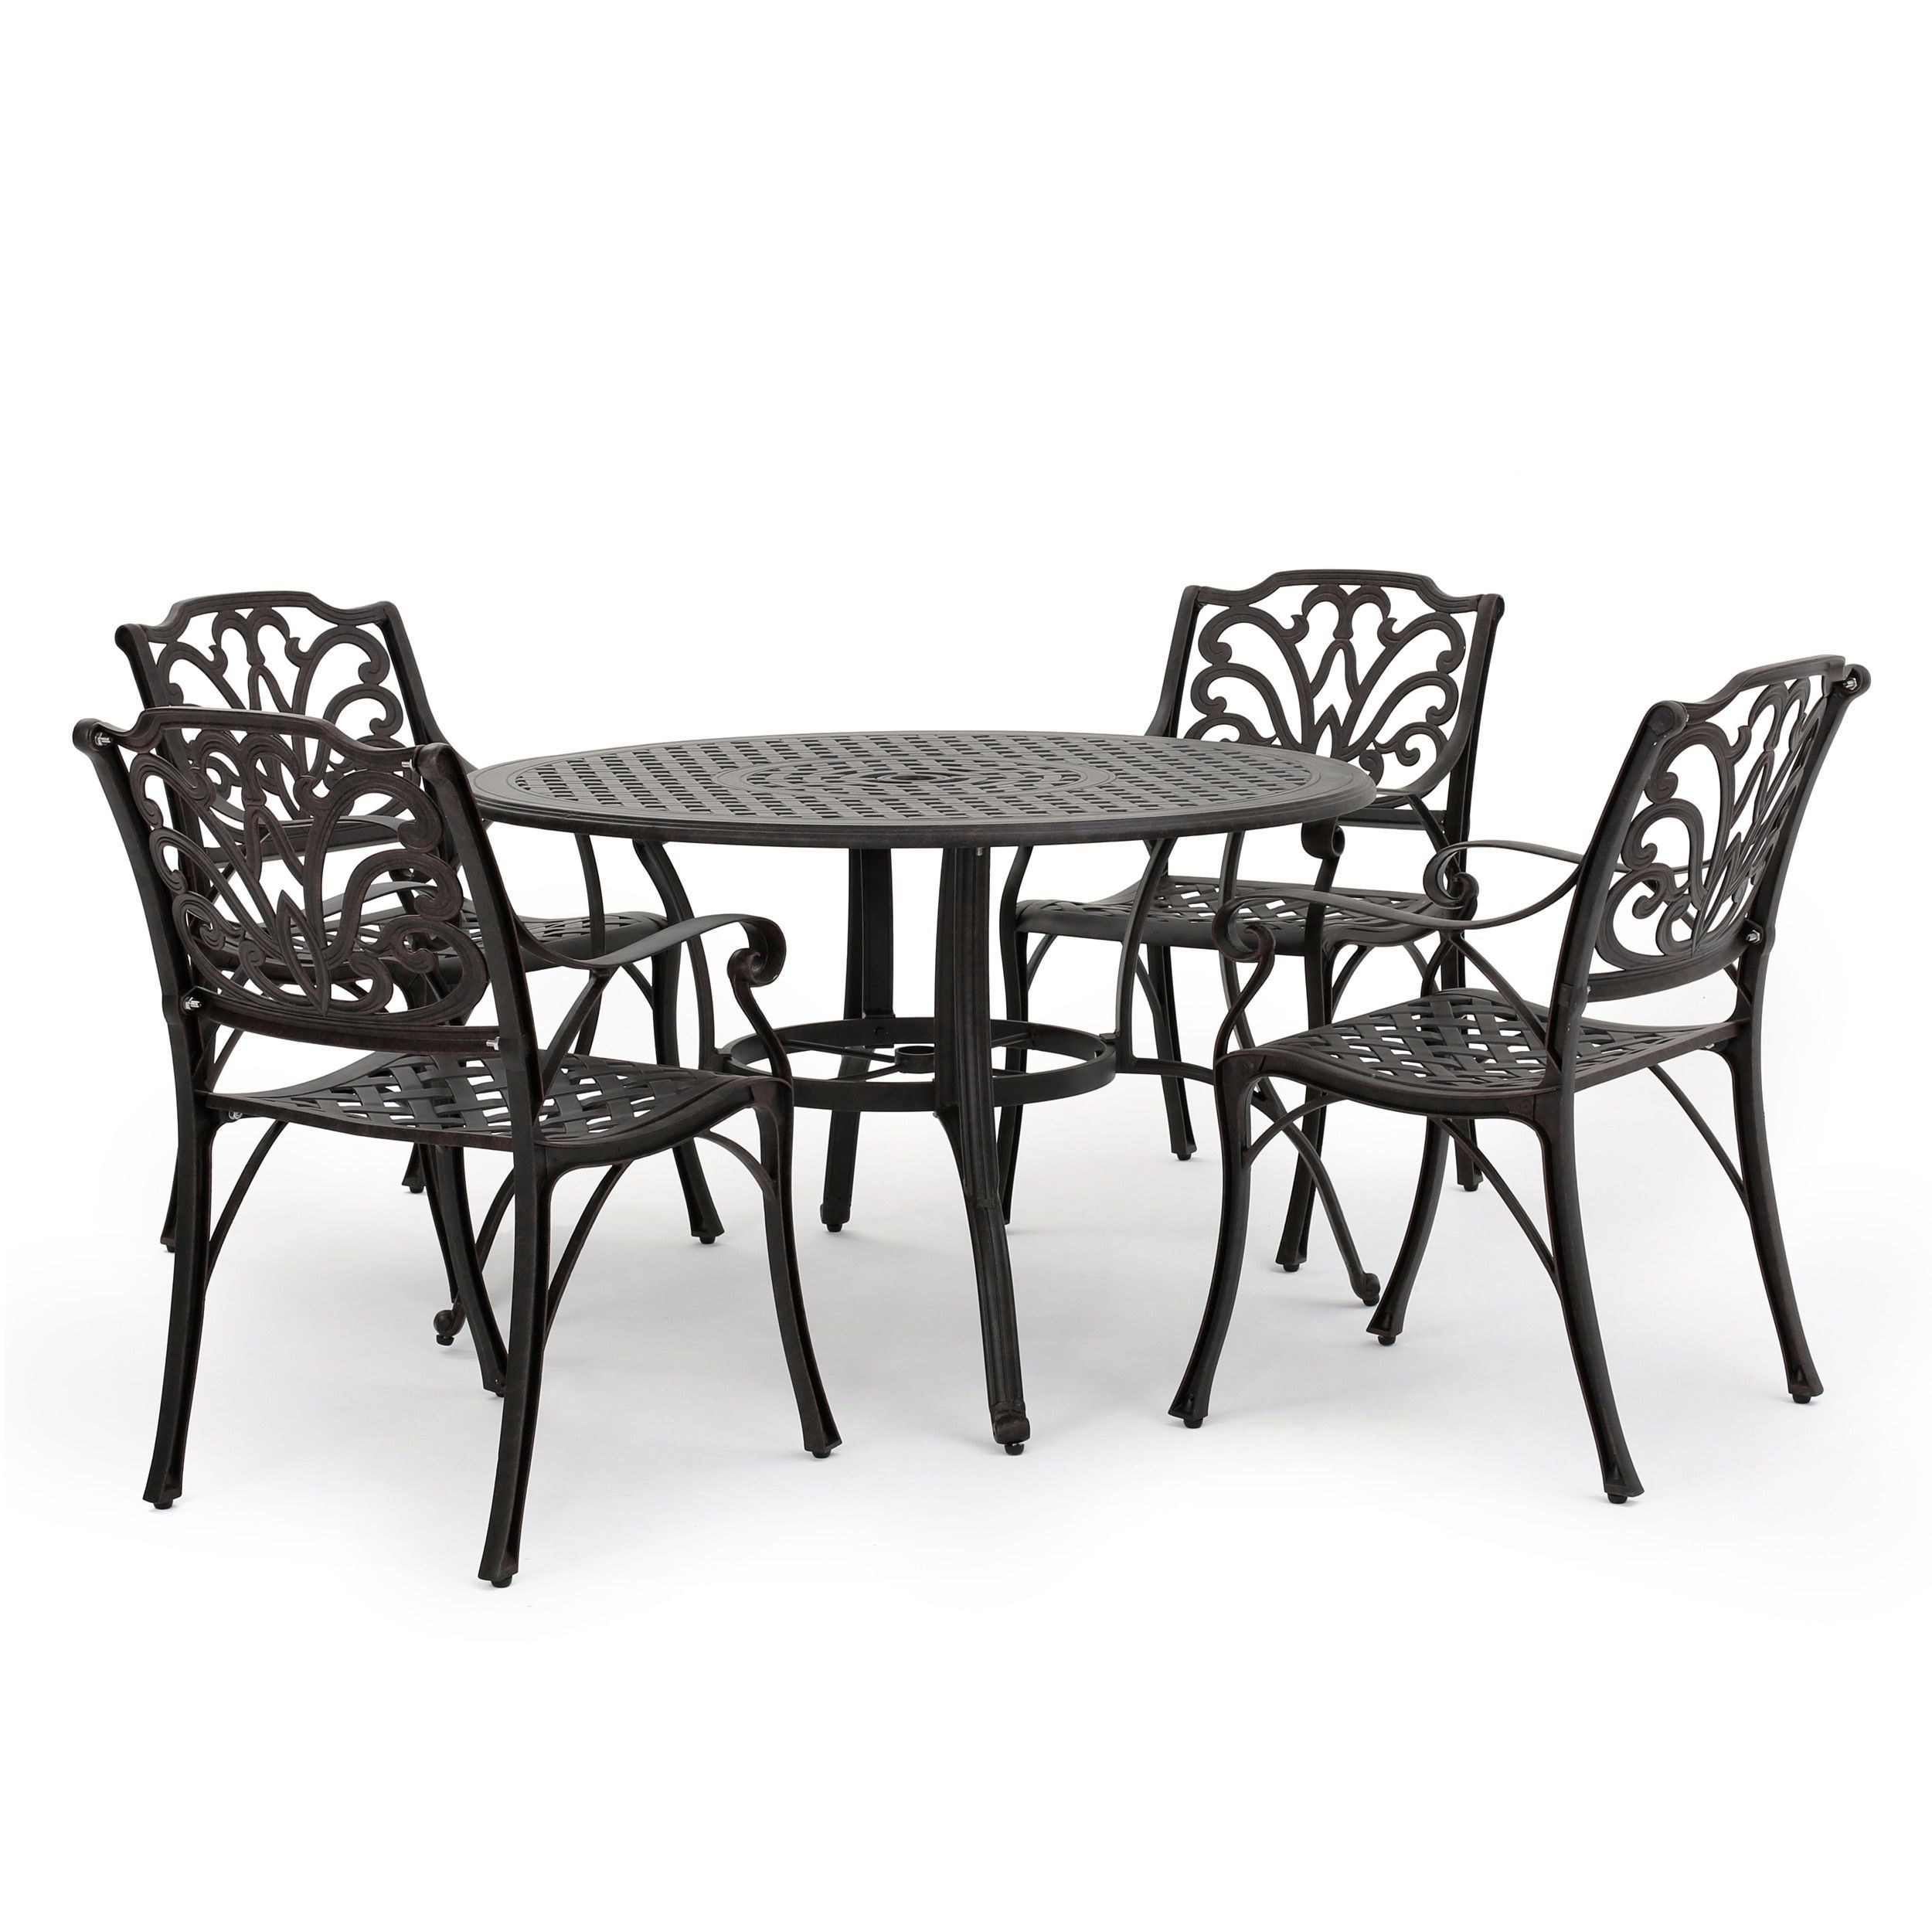 Alfresco Outdoor 5 Piece Cast Aluminum Circular Dining Set By Christopher  Knight Home (Bronze